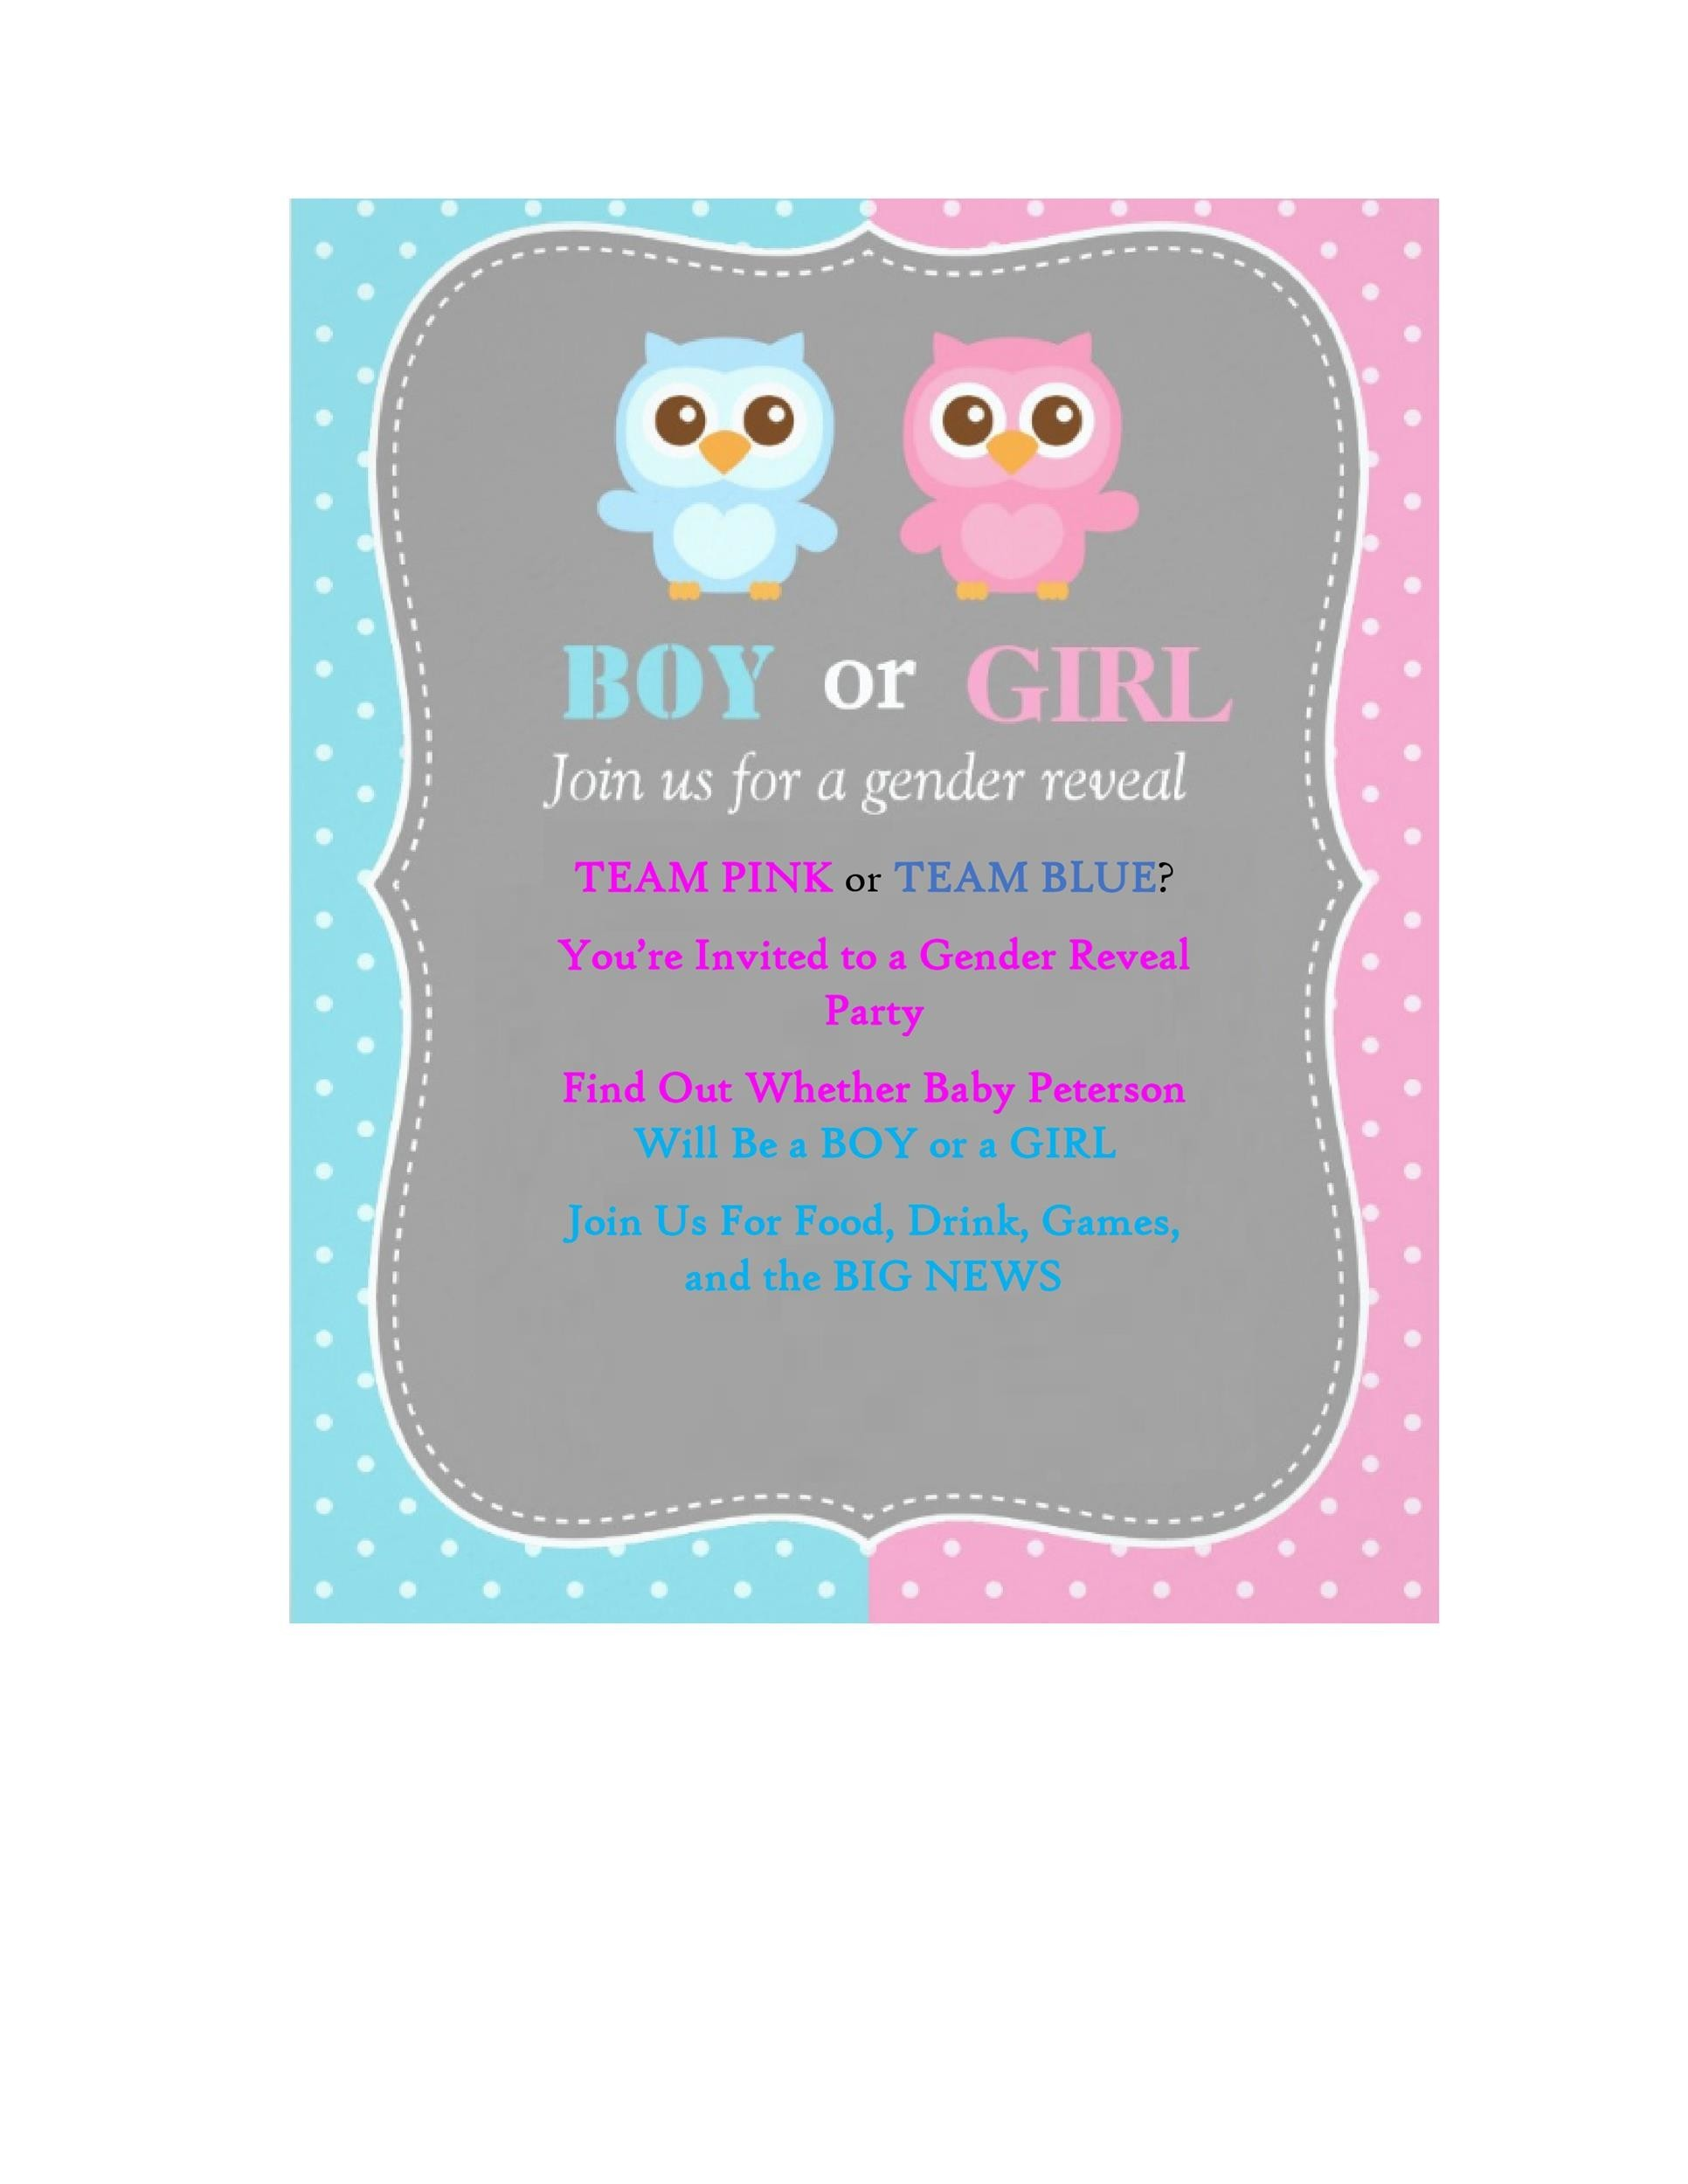 photo regarding Free Printable Gender Reveal Invitations identified as 17 Absolutely free Gender Demonstrate Invitation Templates ᐅ Template Lab